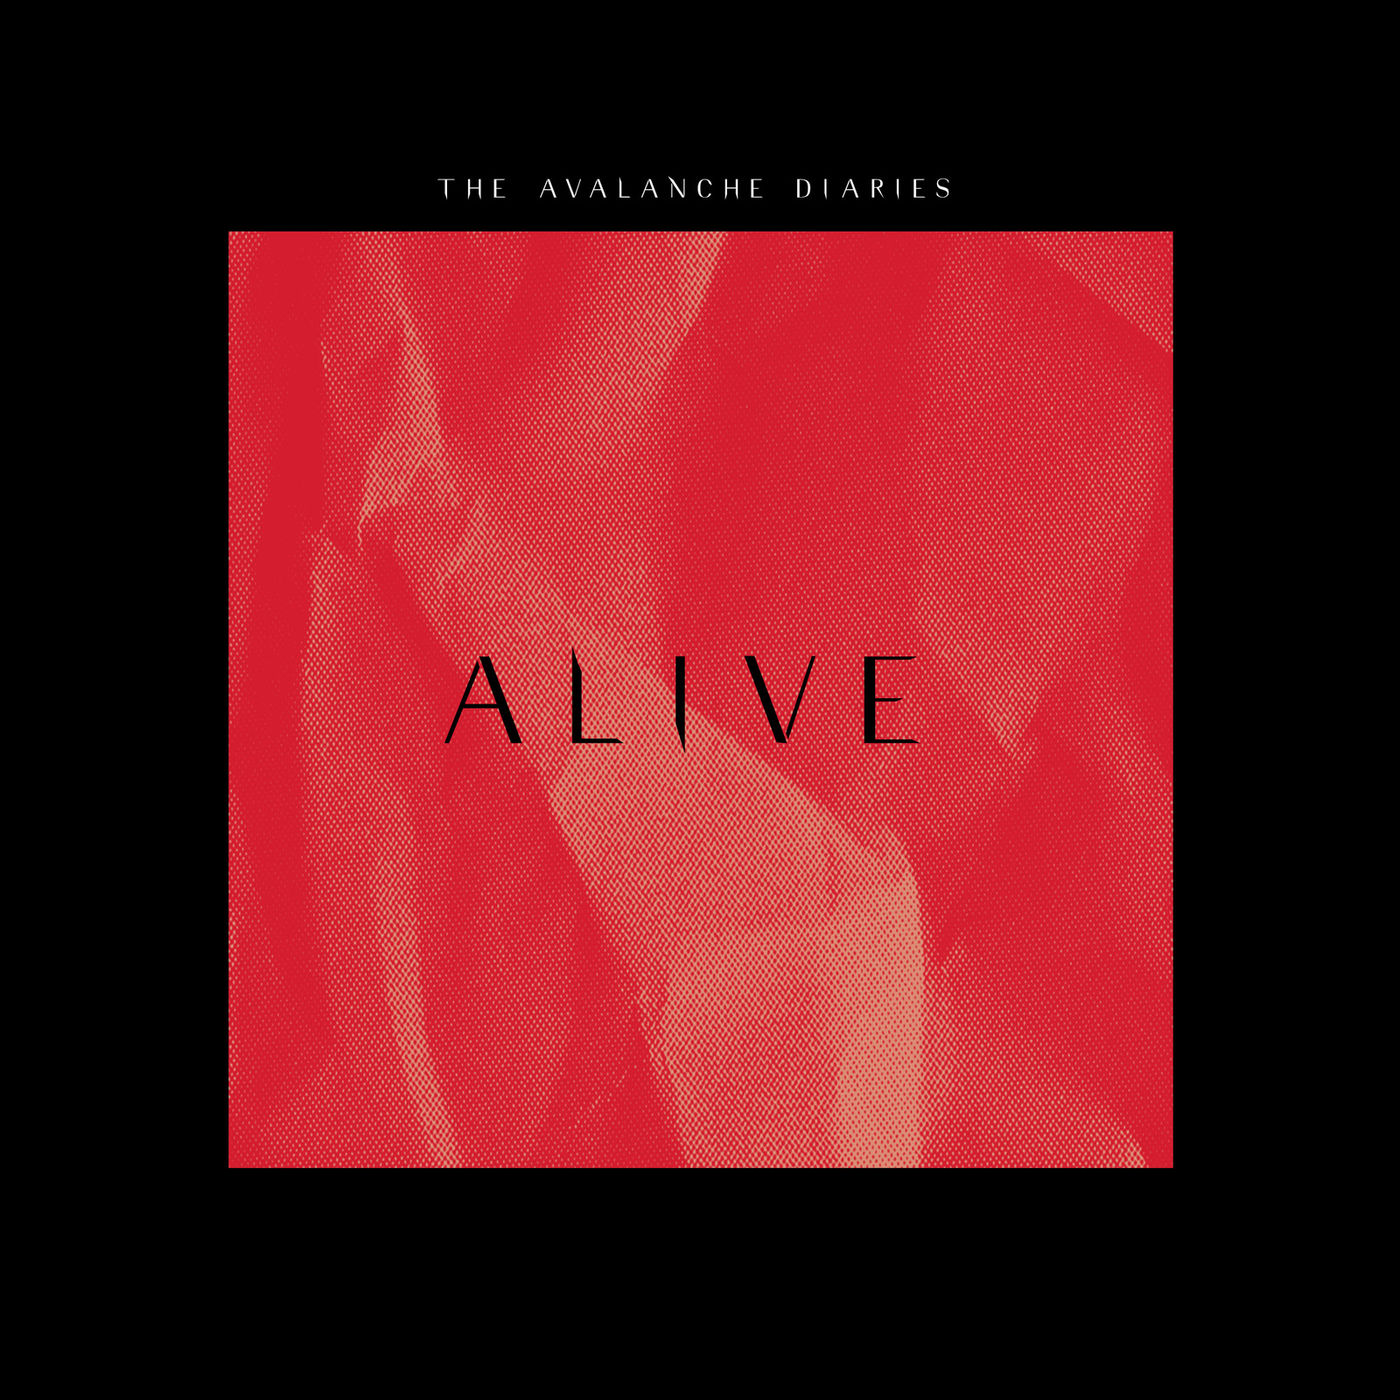 The Avalanche Diaries - Alive [single] (2019)